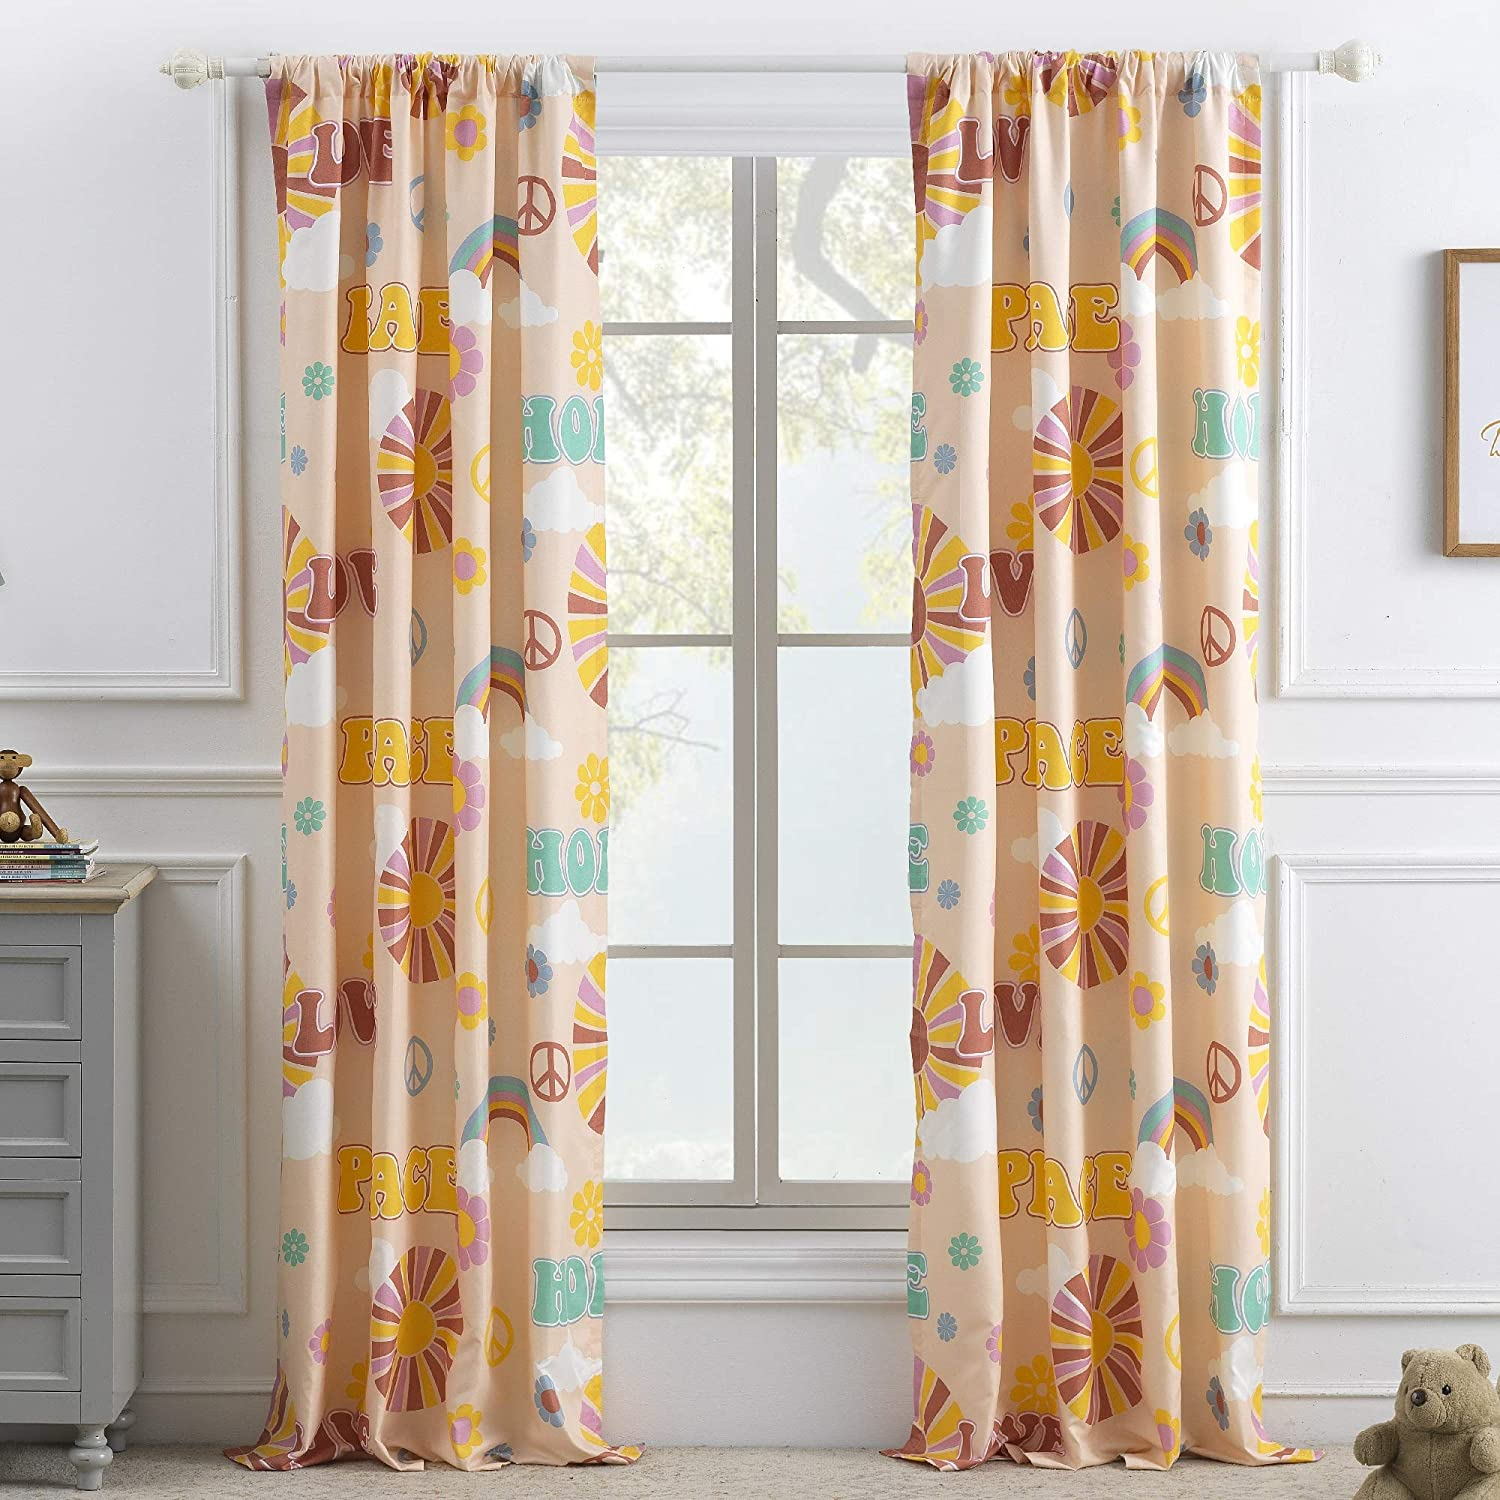 Greenland Home Fashions Cassidy Curtain Panel Set (Set of 2)